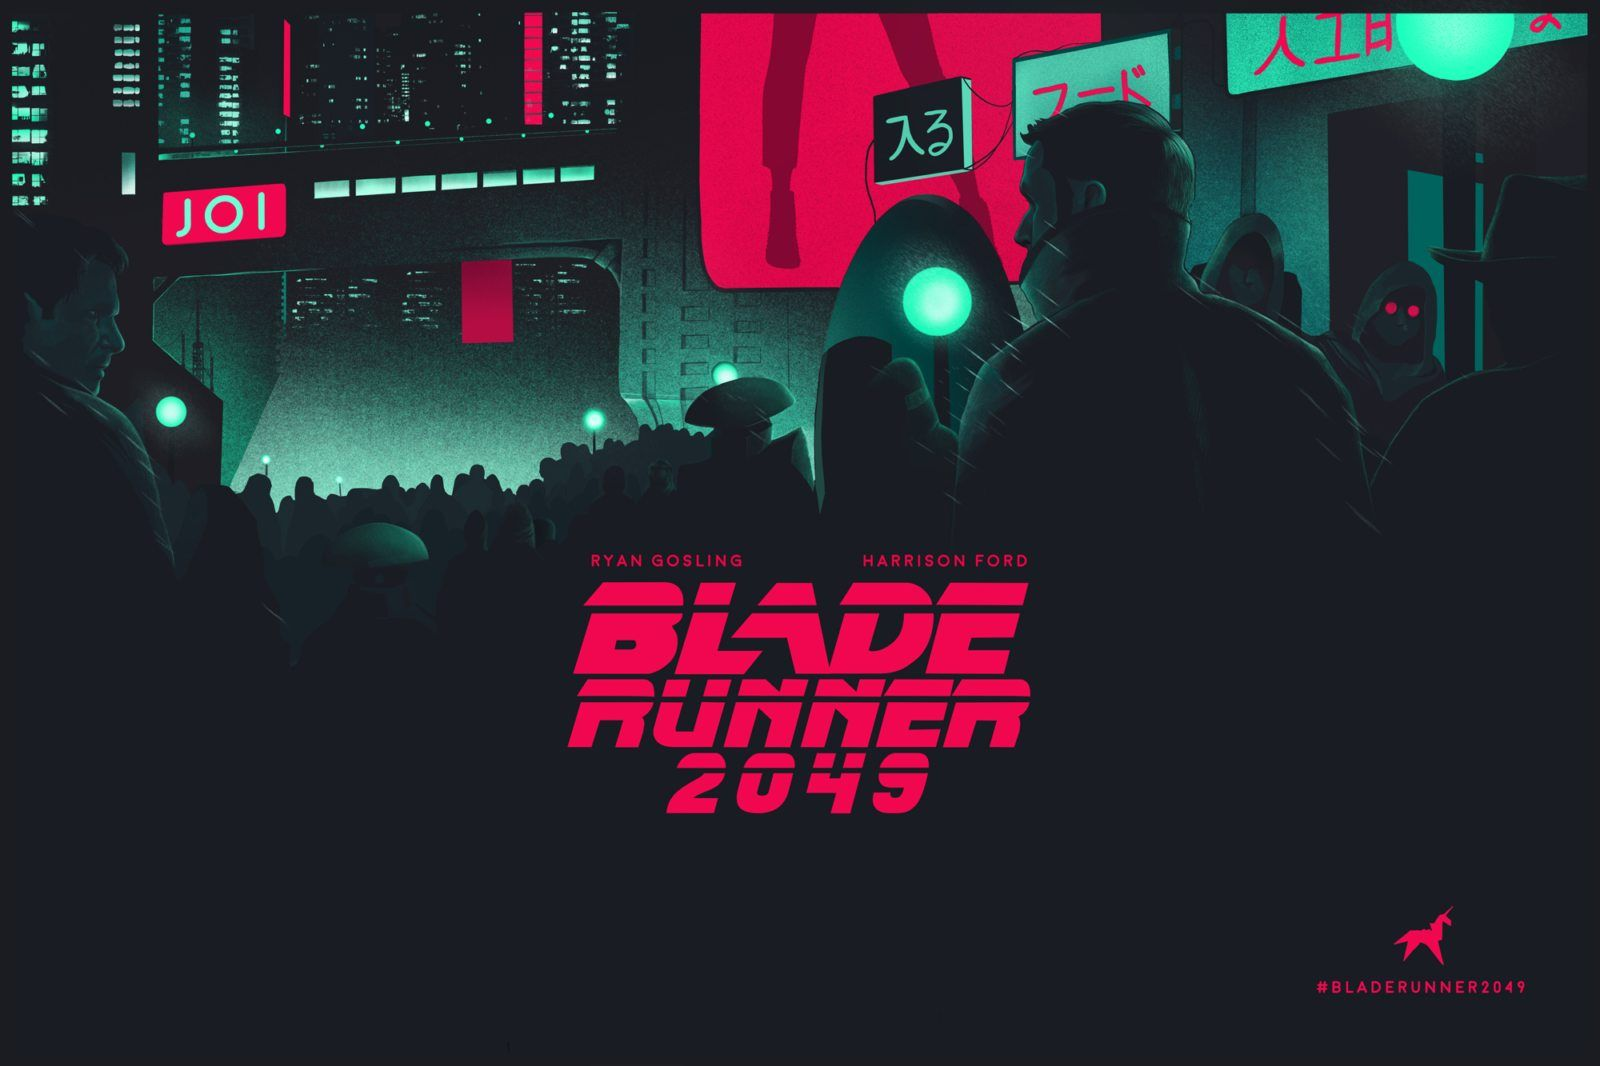 Blade Runner 2049 2017 Hd Wallpaper From Gallsourcecom En